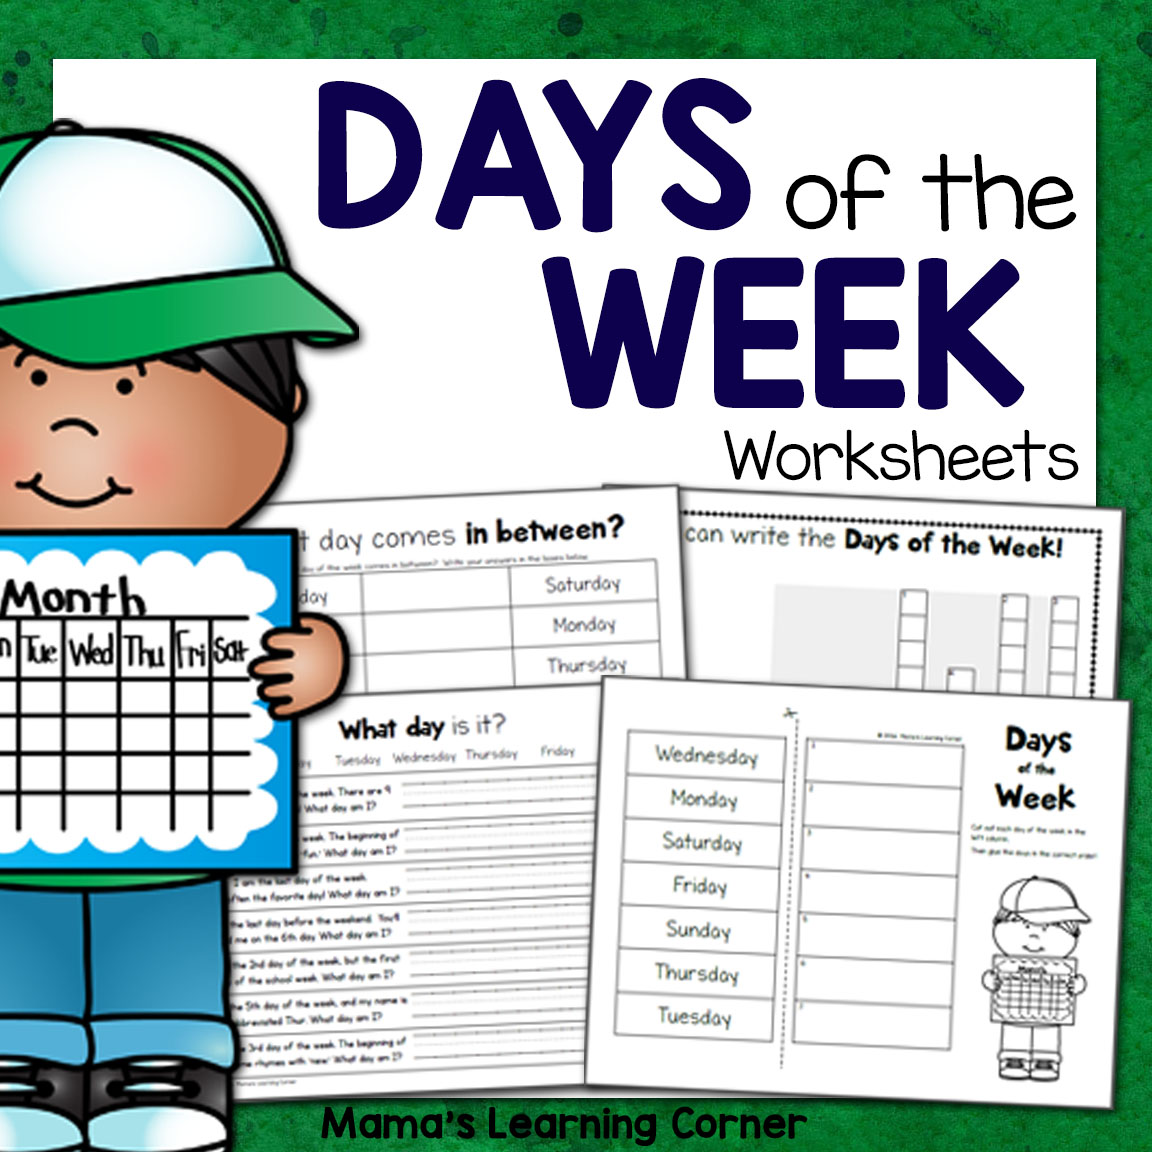 hight resolution of Days of the Week Worksheets - Mamas Learning Corner